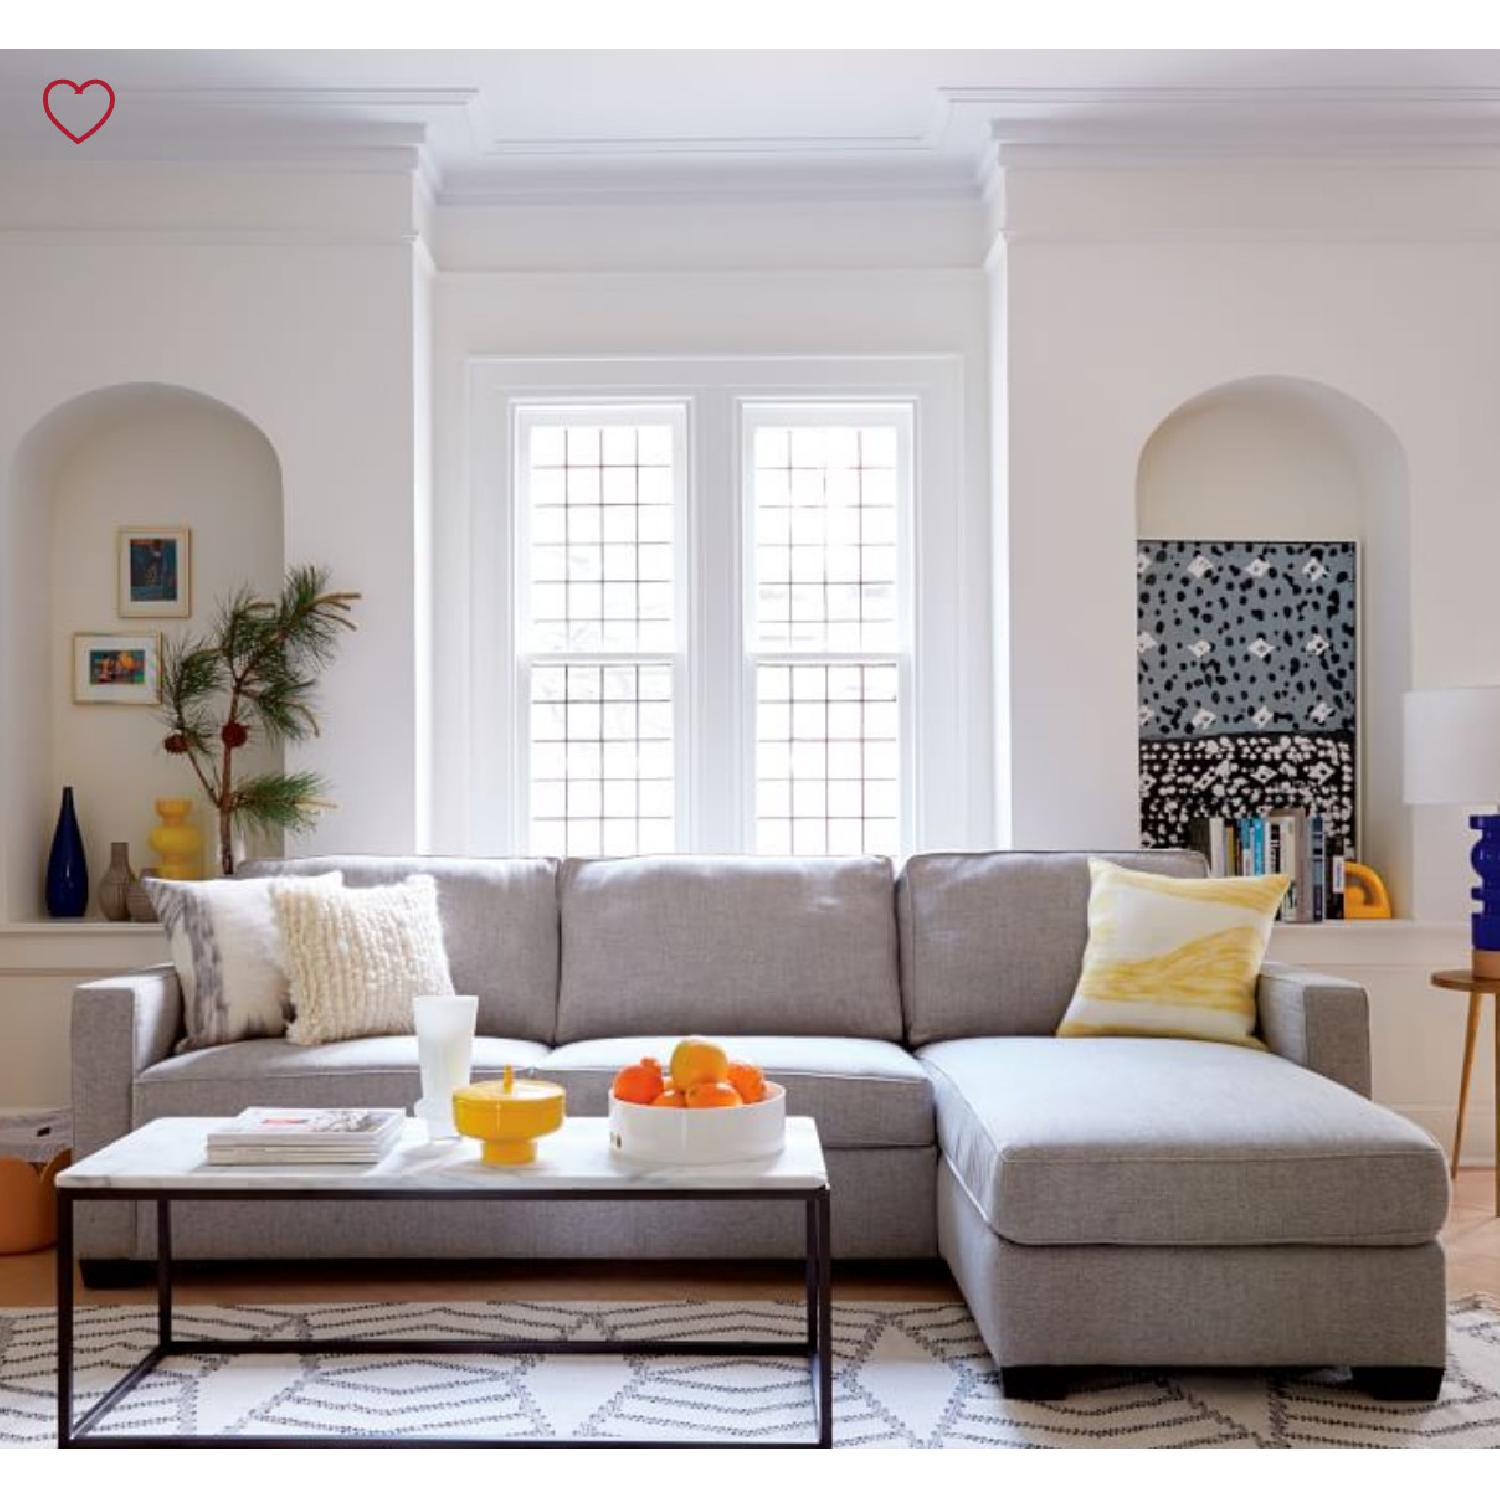 West Elm Henry 2-Piece Chaise Sectional Sofa - image-4